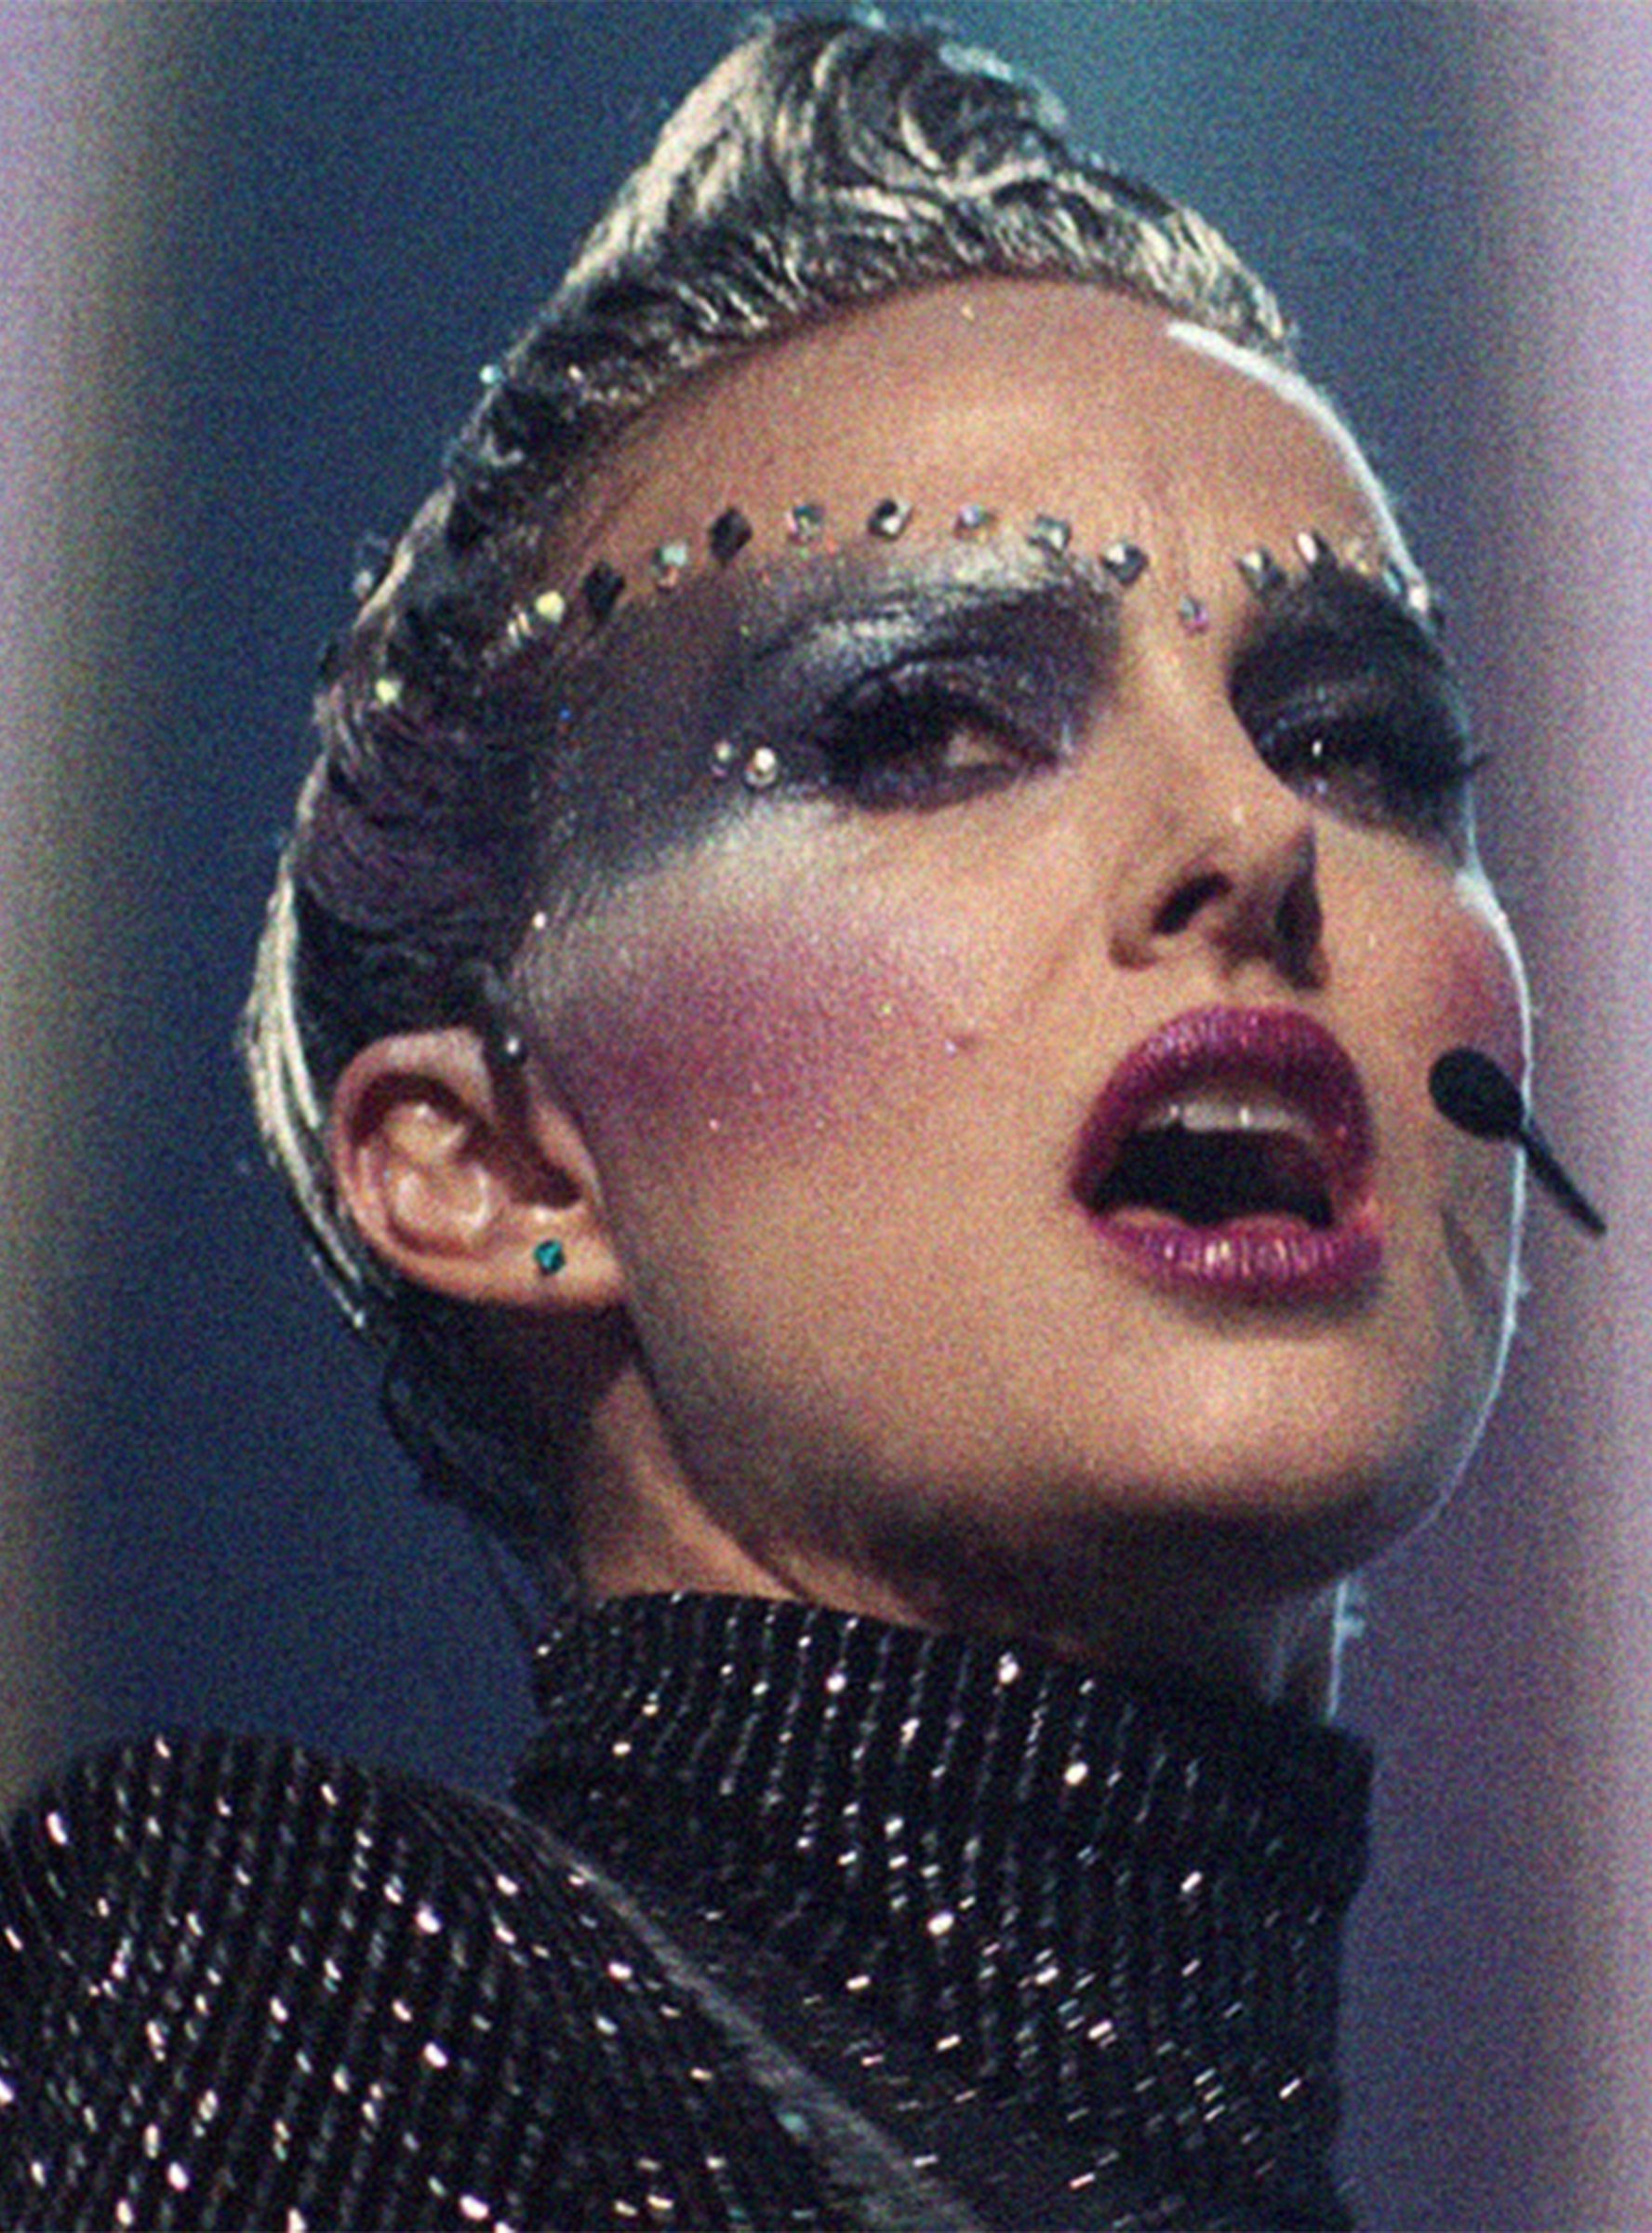 Natalie Portman Is The Anti Pop Star In Edgy Vox Lux Trailer Natalie Portman Pop Star Natalie